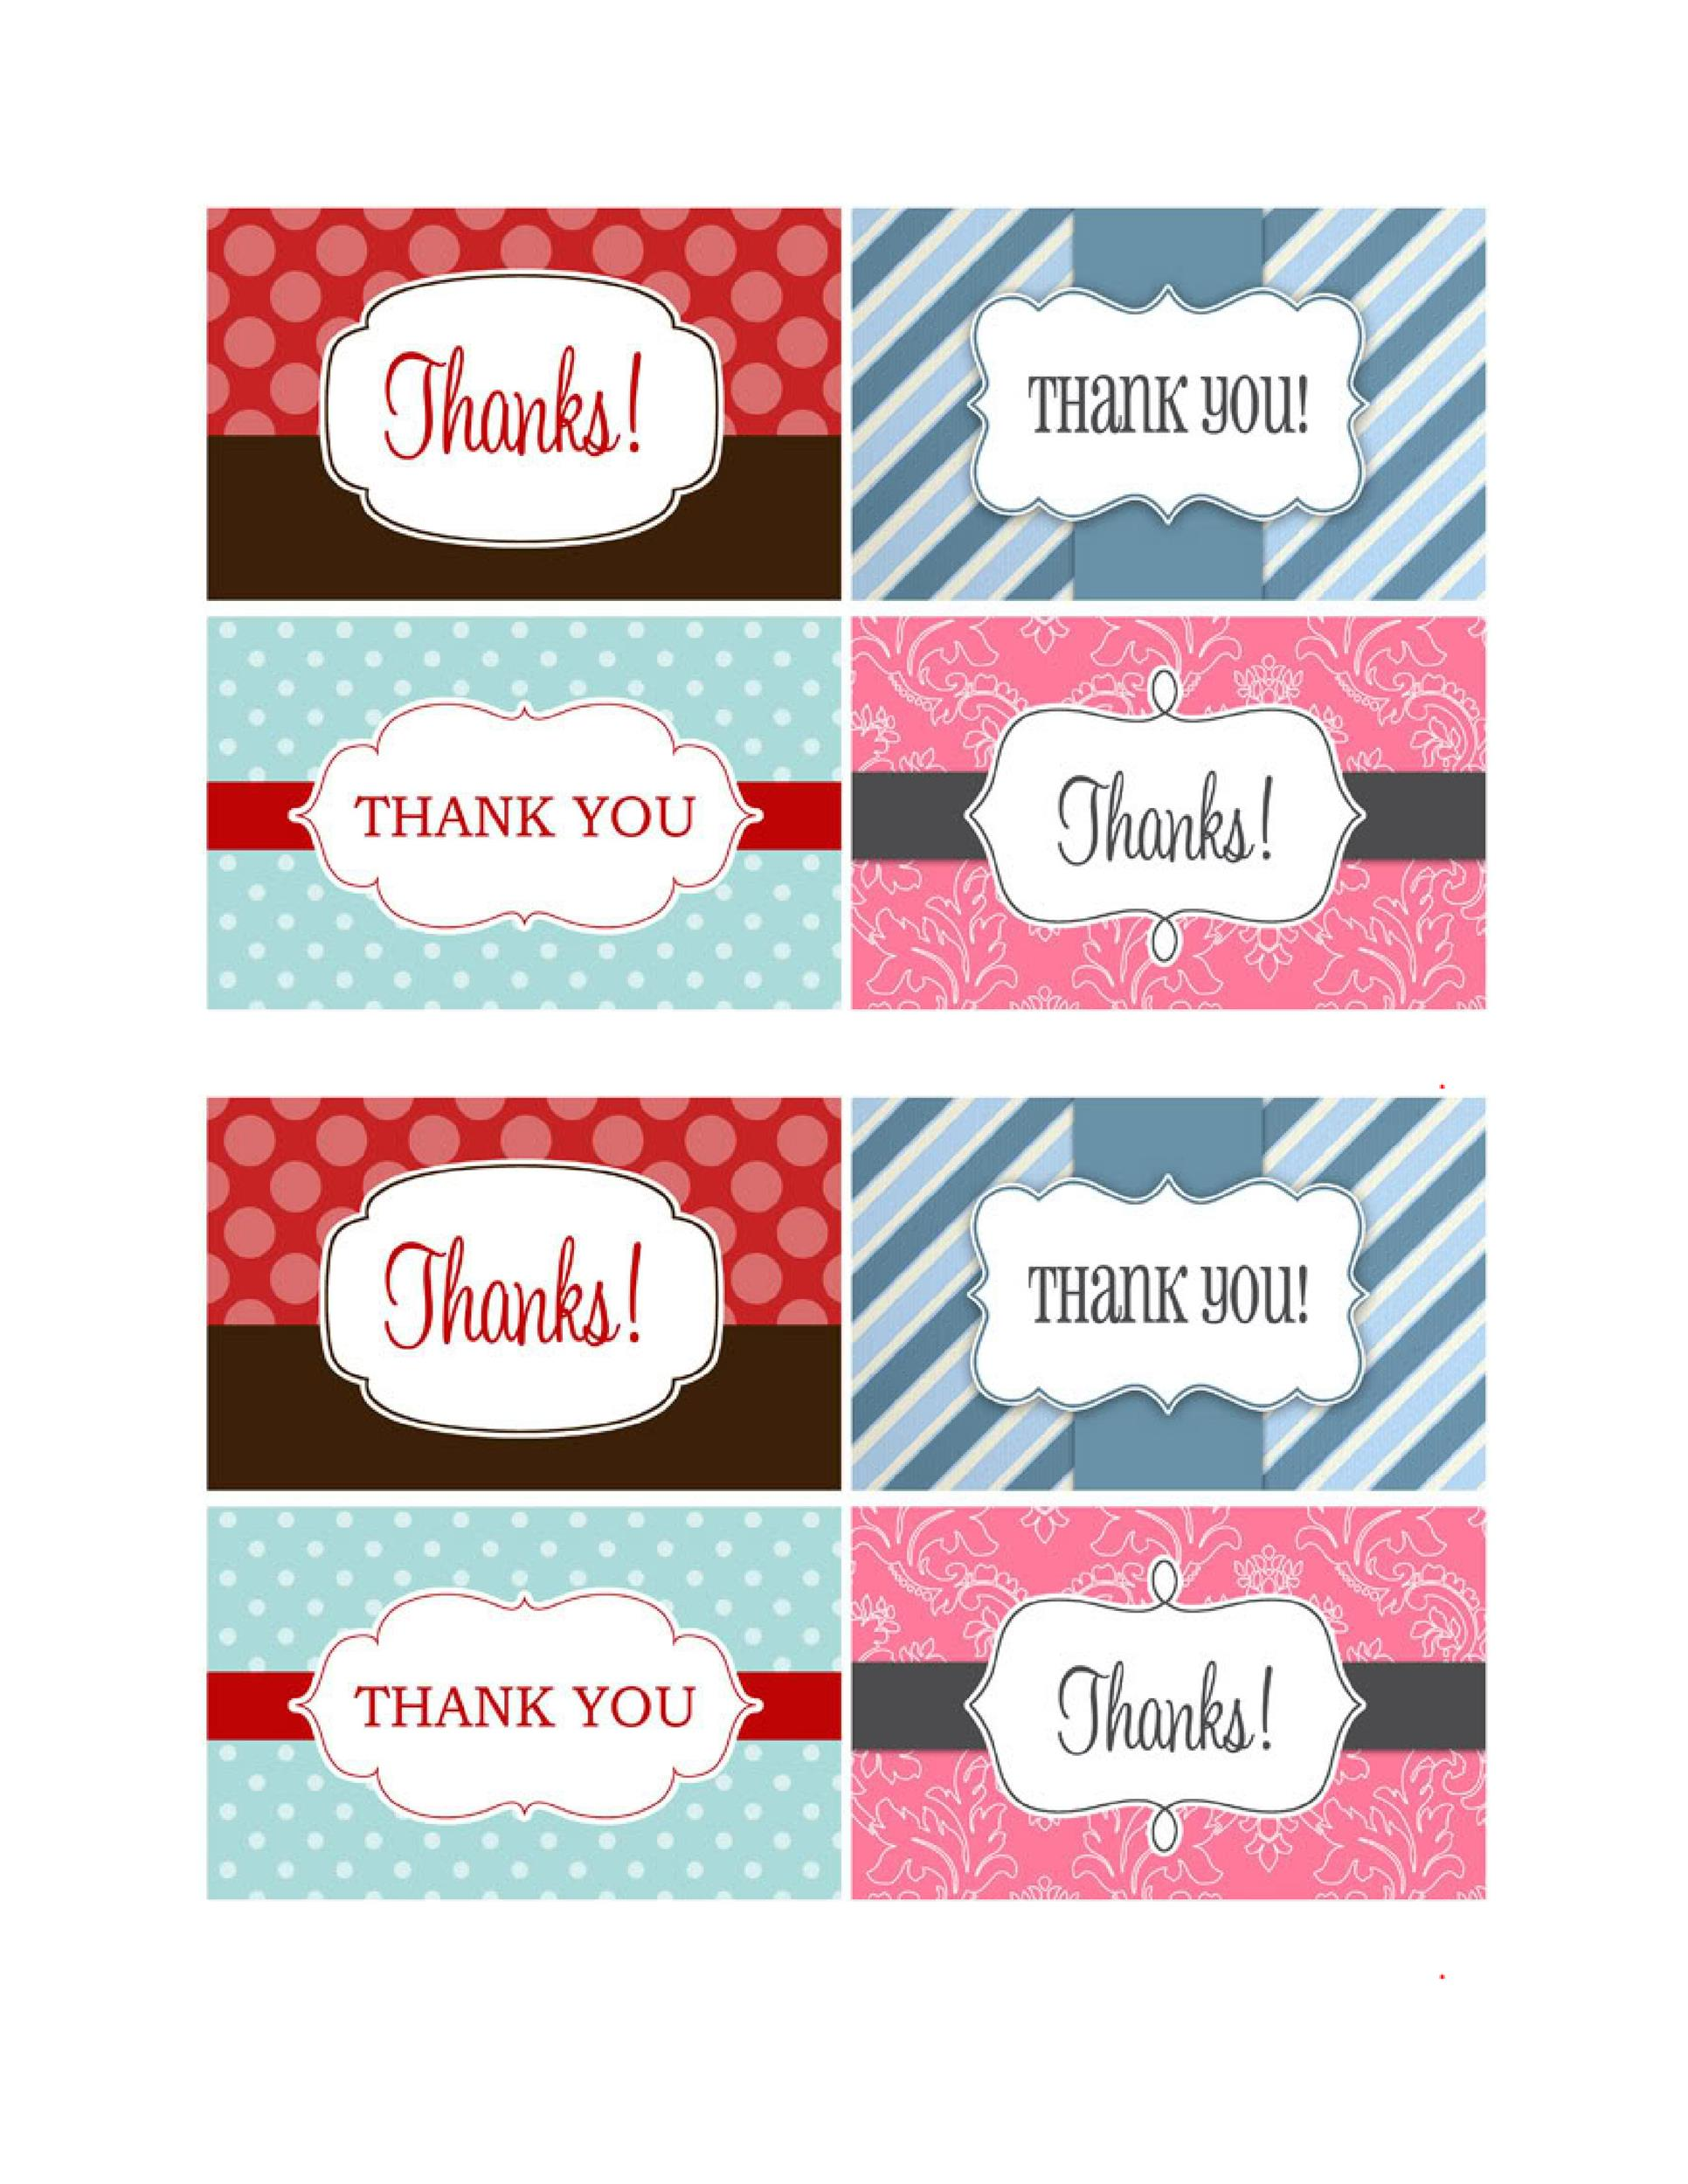 graphic about Large Gift Tags Printable referred to as 44 Totally free Printable Reward Tag Templates ᐅ Template Lab